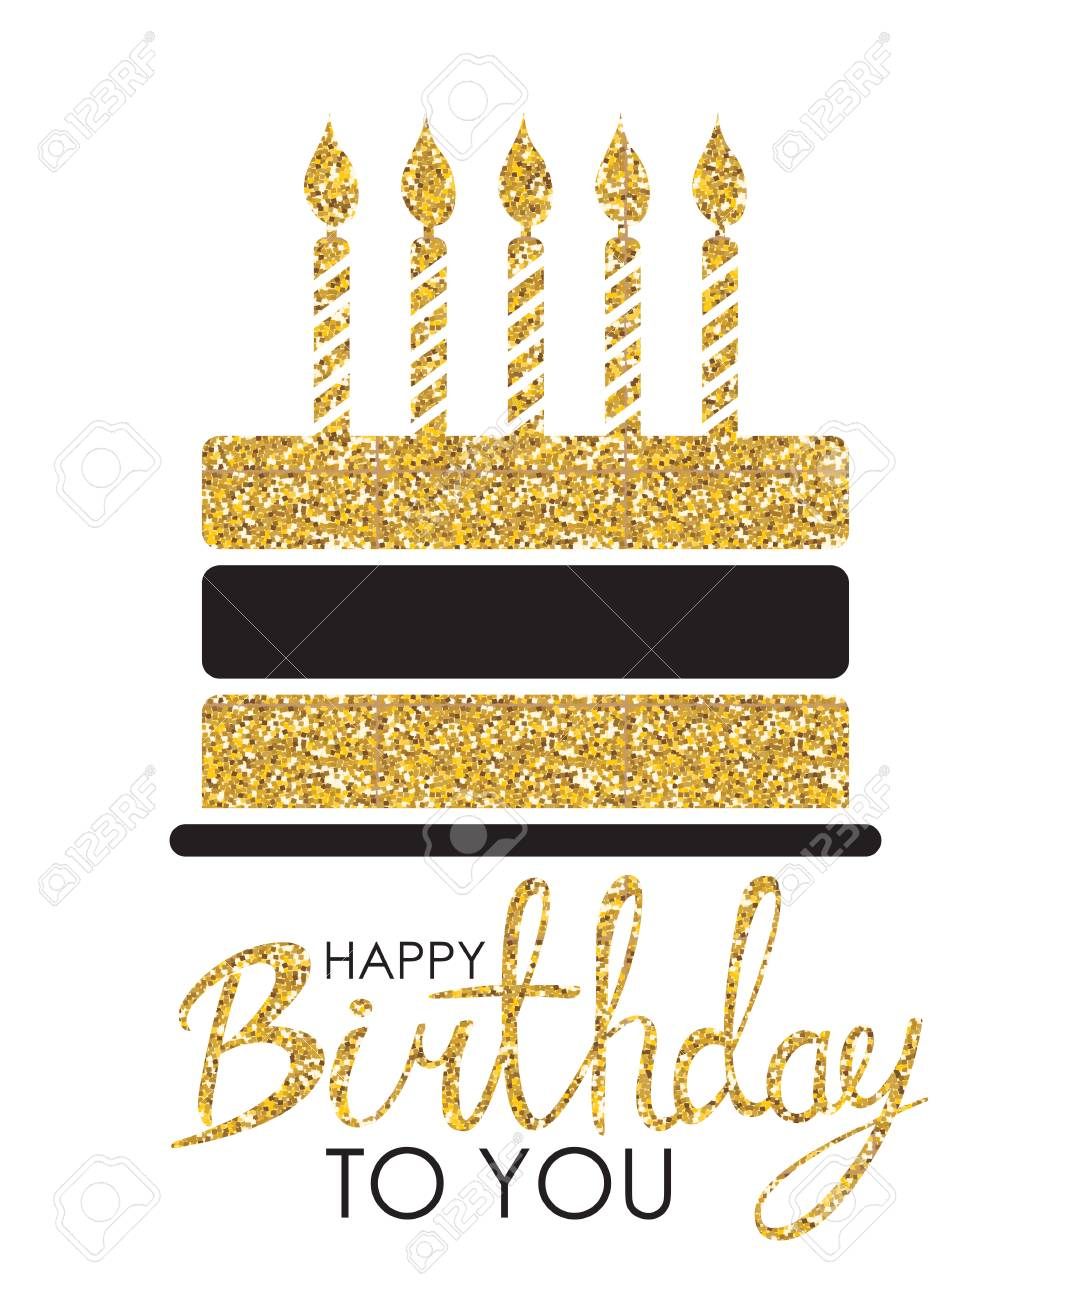 ... Birthday Cake Card Template Image Collections Birthday Cake Birthday  Cake Card Template Choice Image Birthday Cake ...